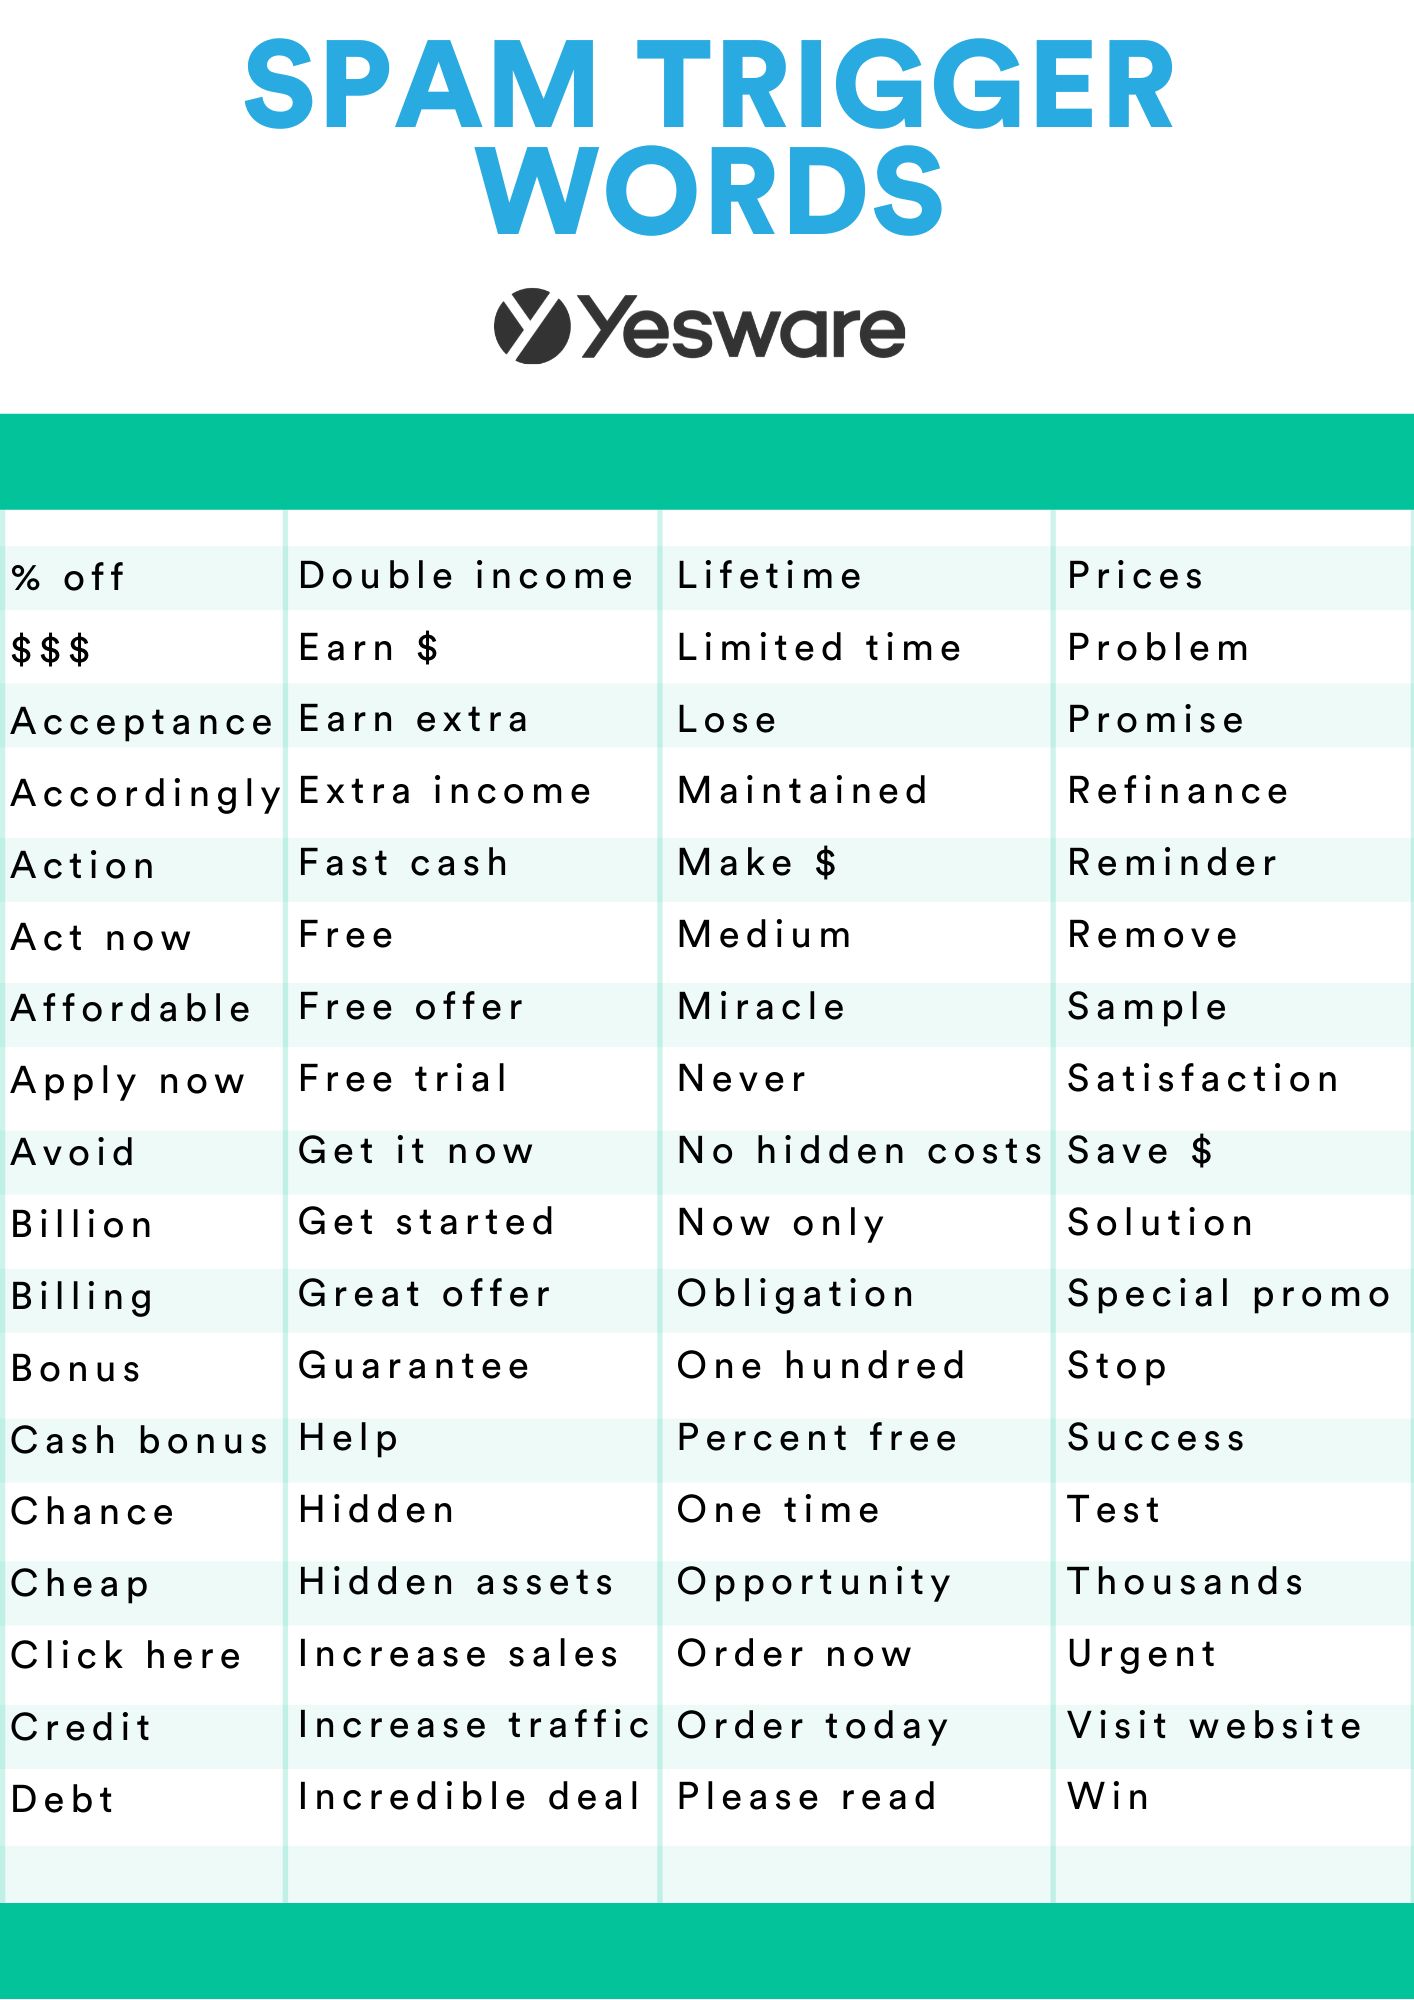 Yesware data: Spam Trigger Words